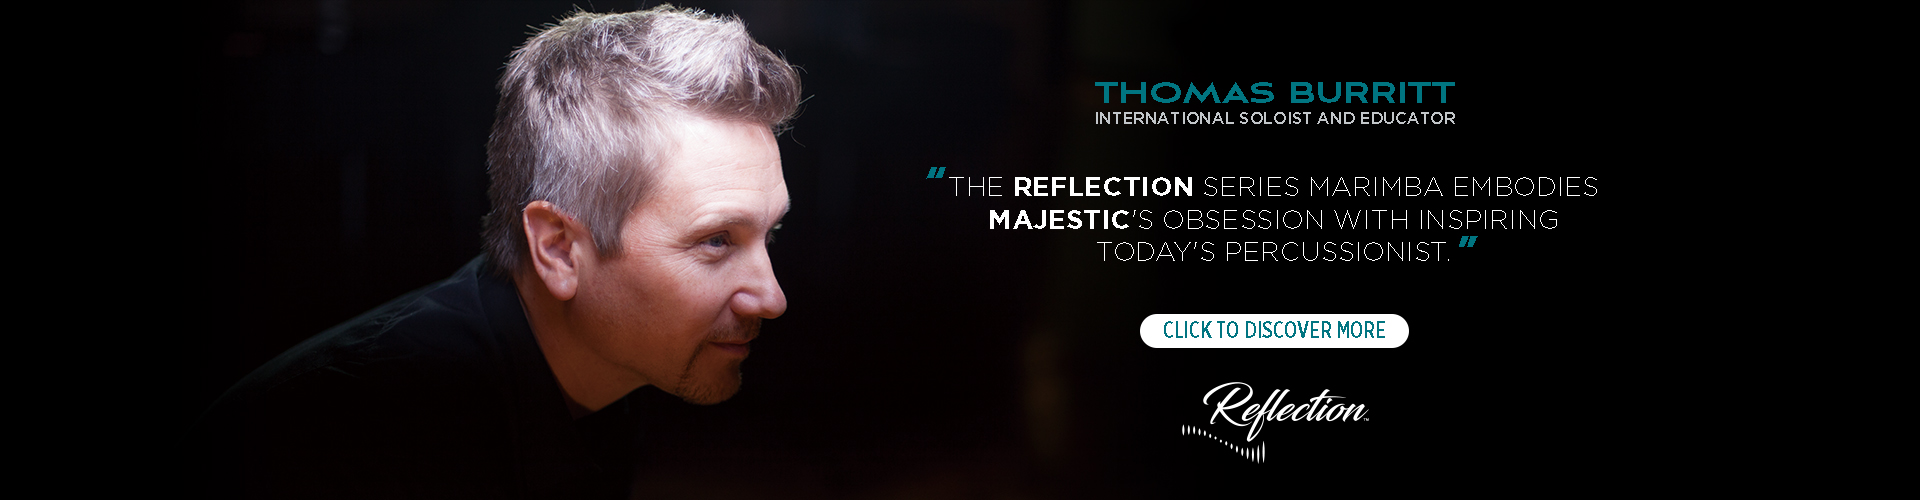 Thomas Burritt Reflection Series